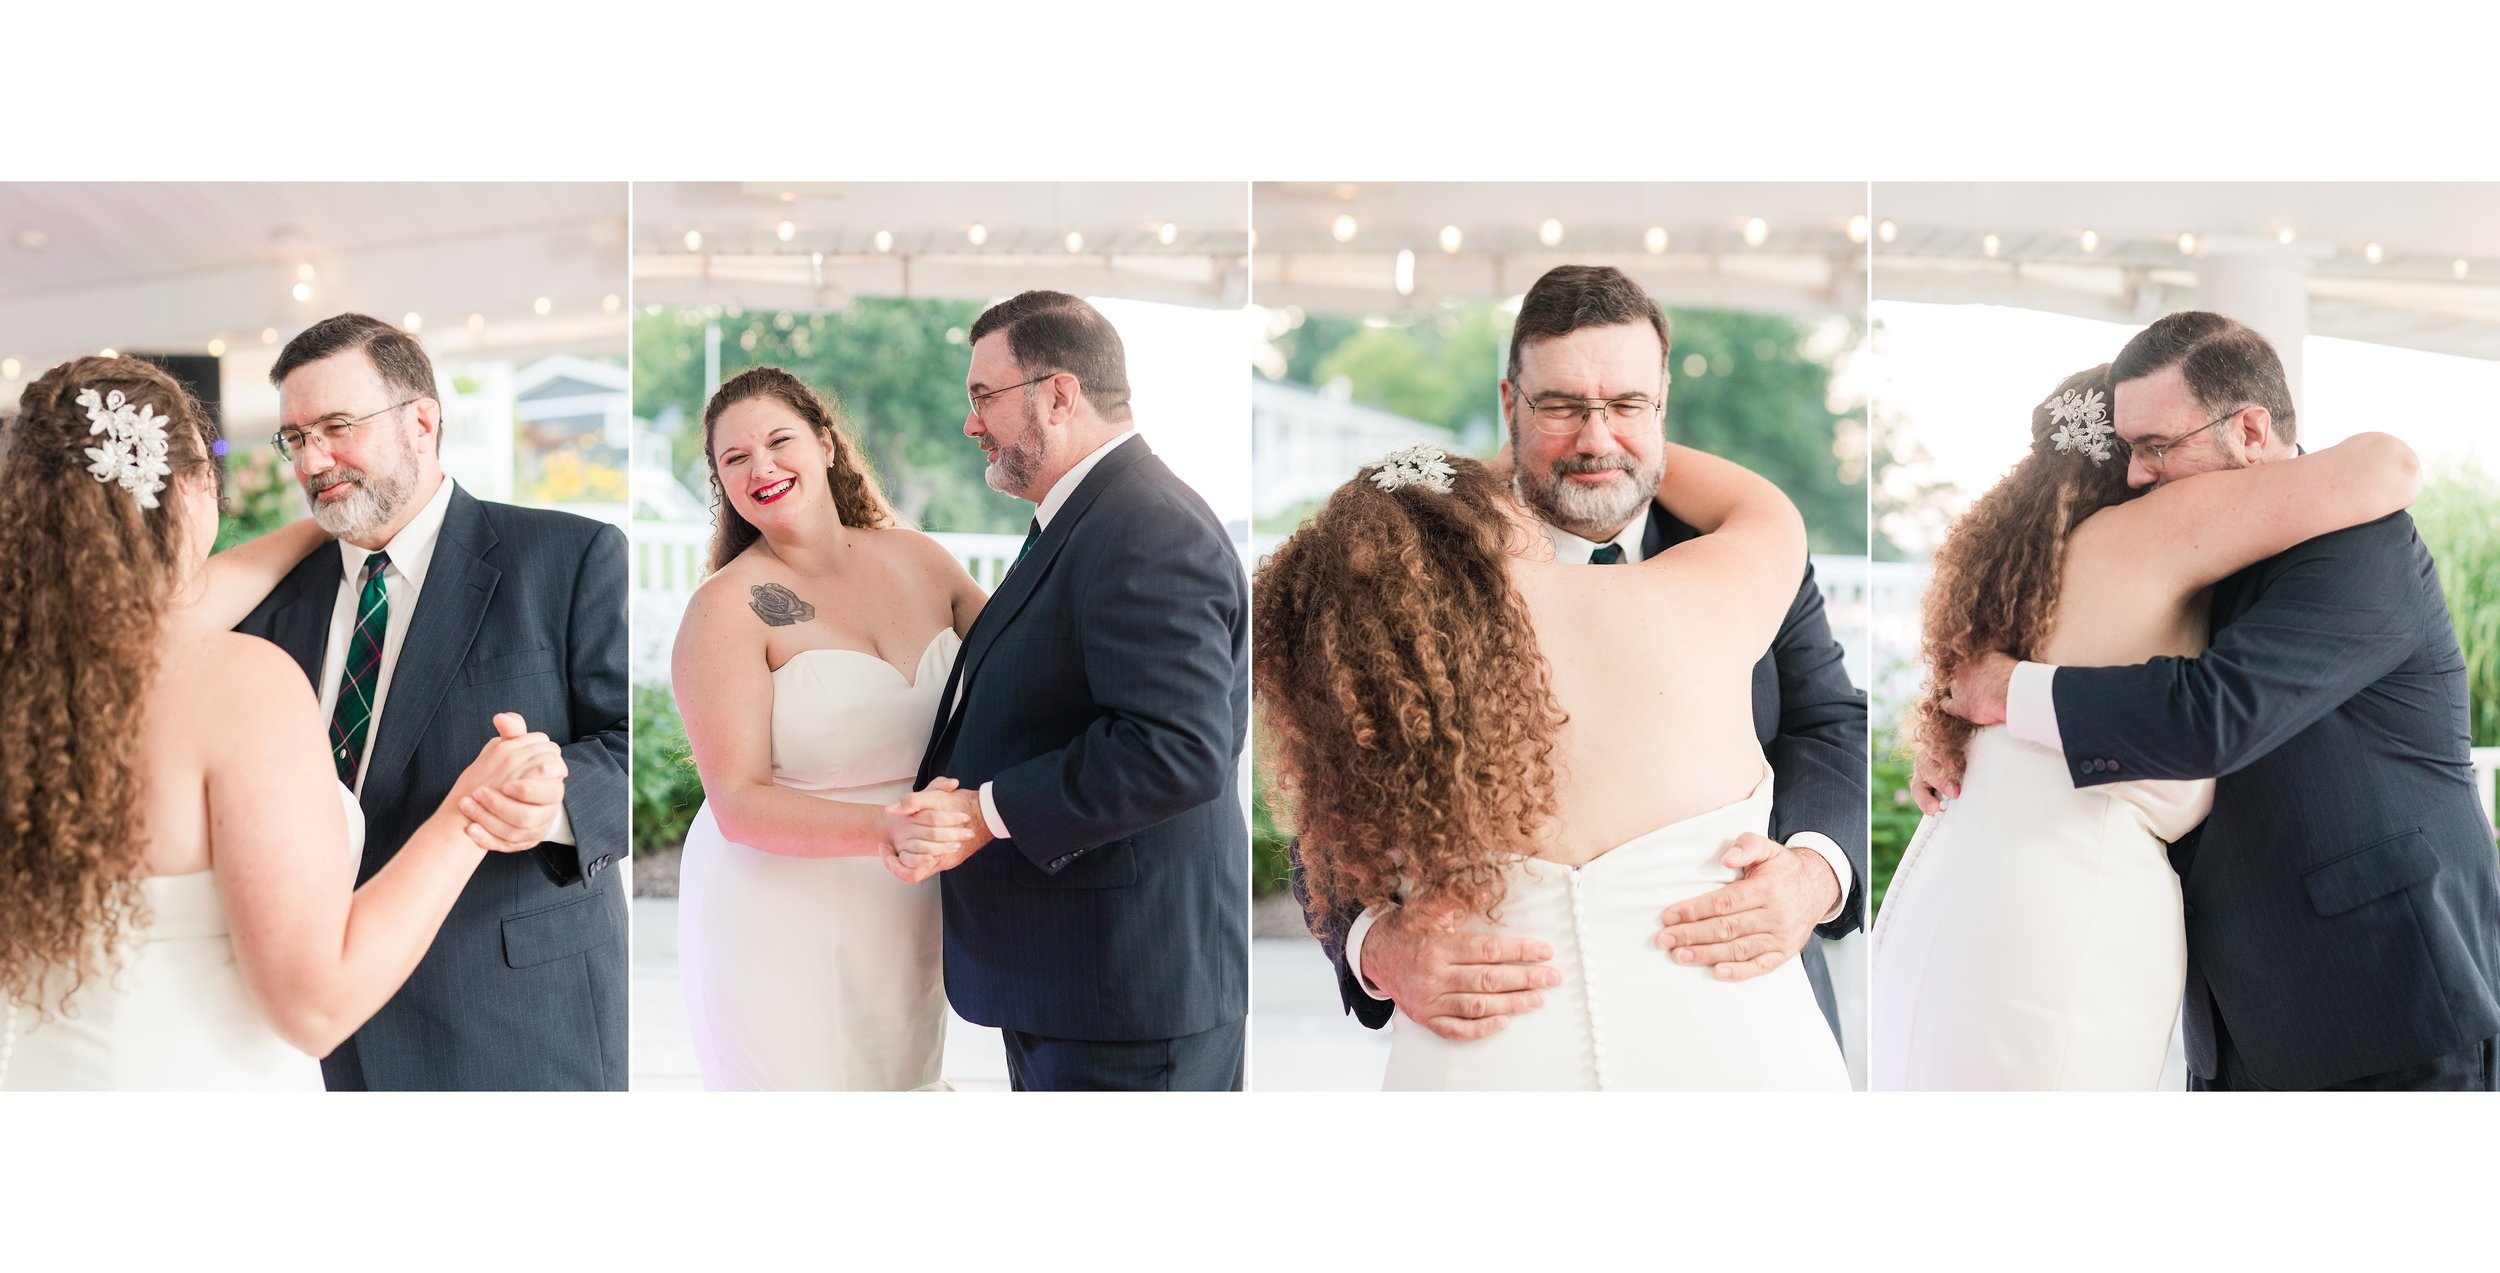 Our_Wedding_Album_12x12_-_30_pages_46.jpg